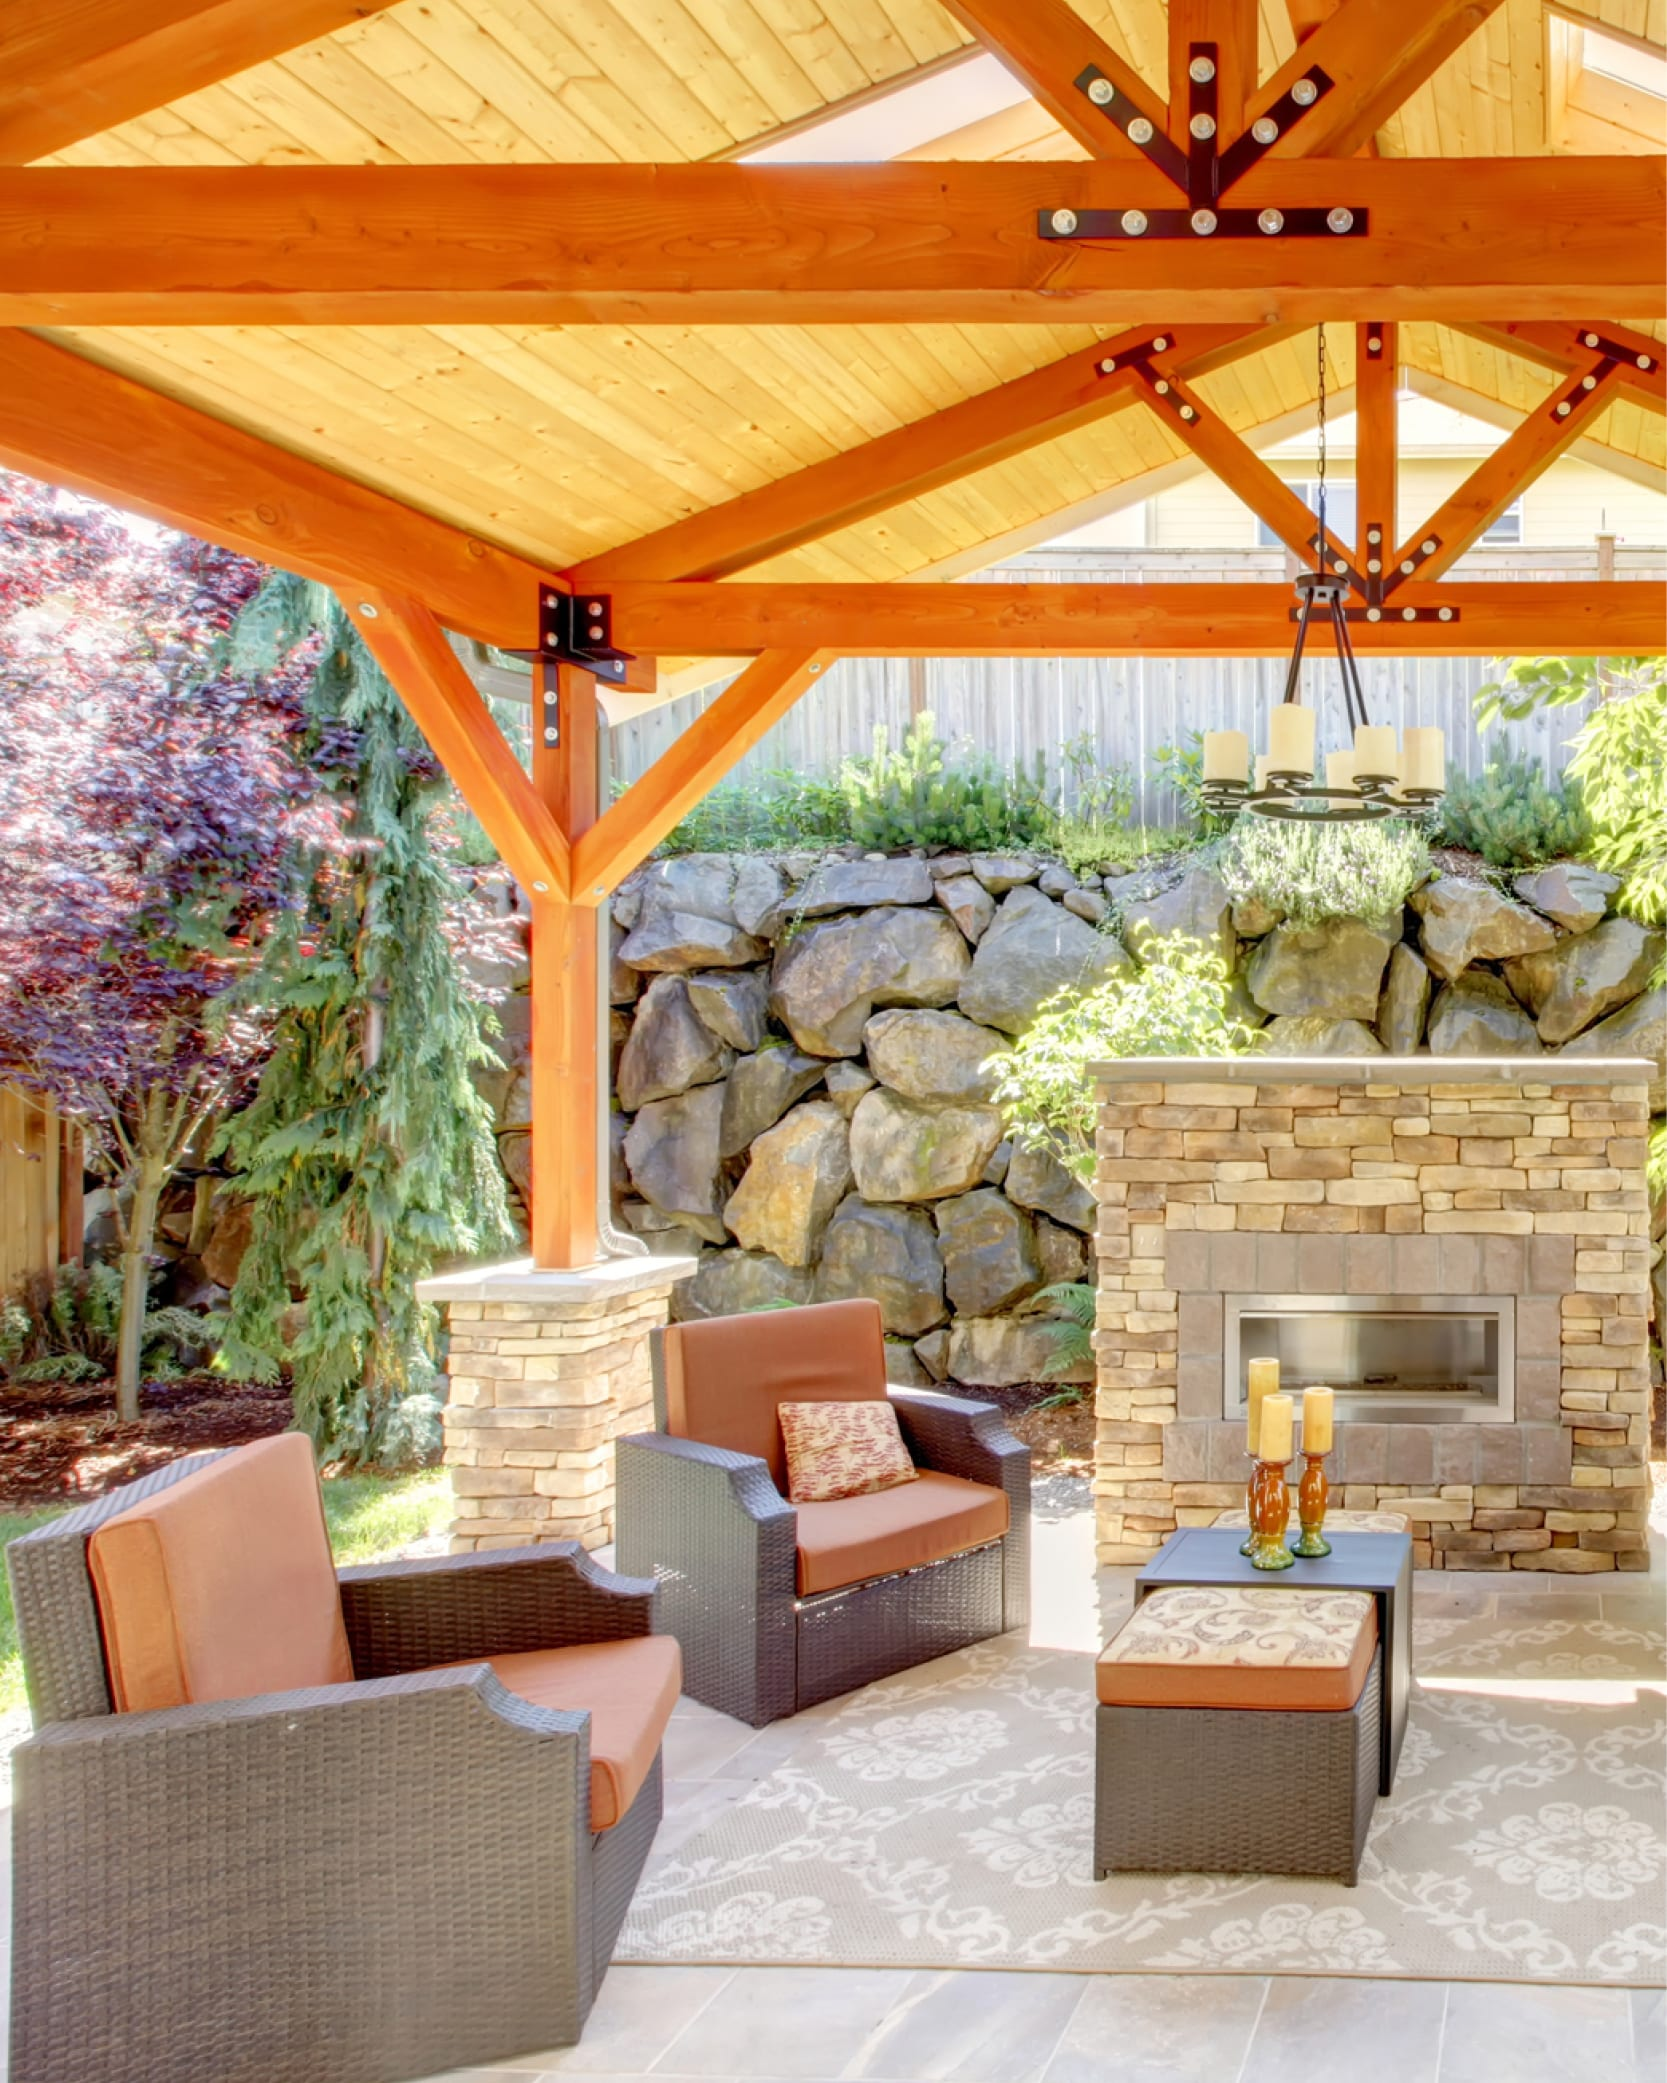 A Covered Patio - Your New Backyard Retreat! - All Star ...